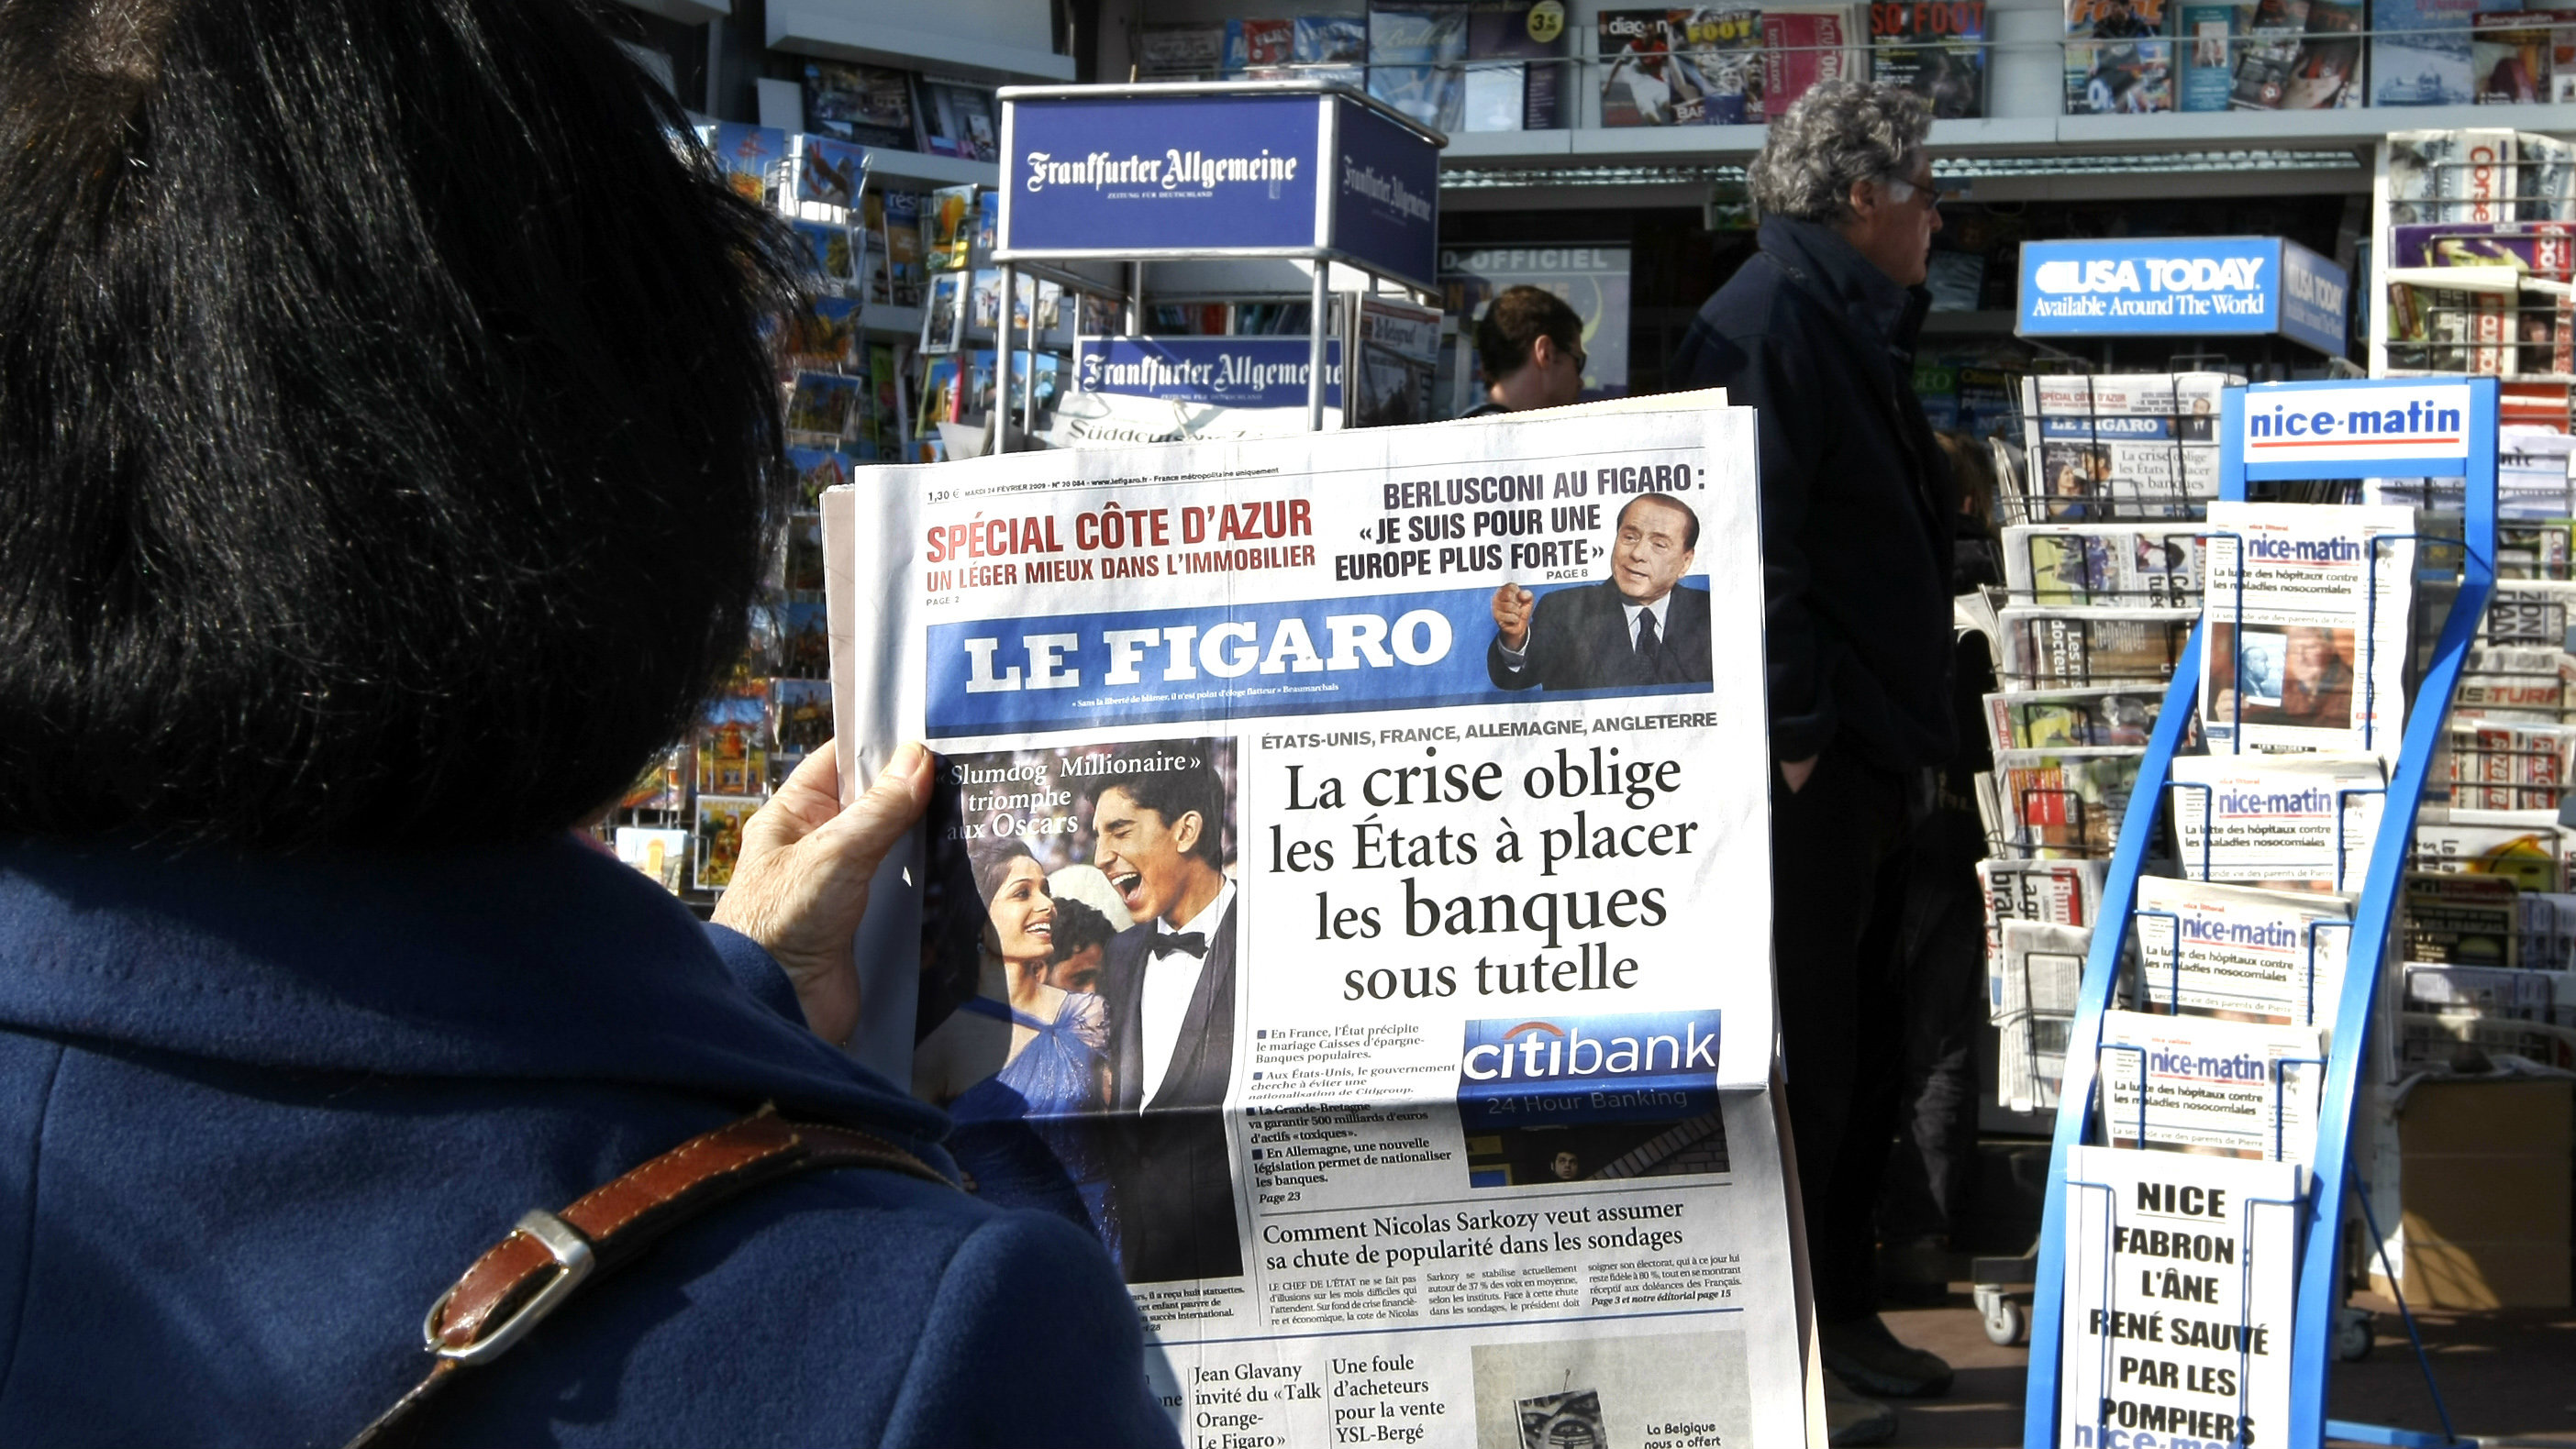 A woman reads the French daily newspaper Le Figaro next to a newsstand in Nice, southeastern France, February 24, 2009. The economic crisis has come at a difficult time for the media industry, but it may be helping those big players who put their magnetic brand power to use in winning online attention. According to data from OJD, the organisation that monitors media circulation in France, big newspapers like Le Figaro or Le Monde or other major titles like sports daily L'Equipe attract some of the biggest online readerships. Picture taken February 24, 2009. To match feature FRANCE-NEWS/INTERNET REUTERS/Eric Gaillard (FRANCE)